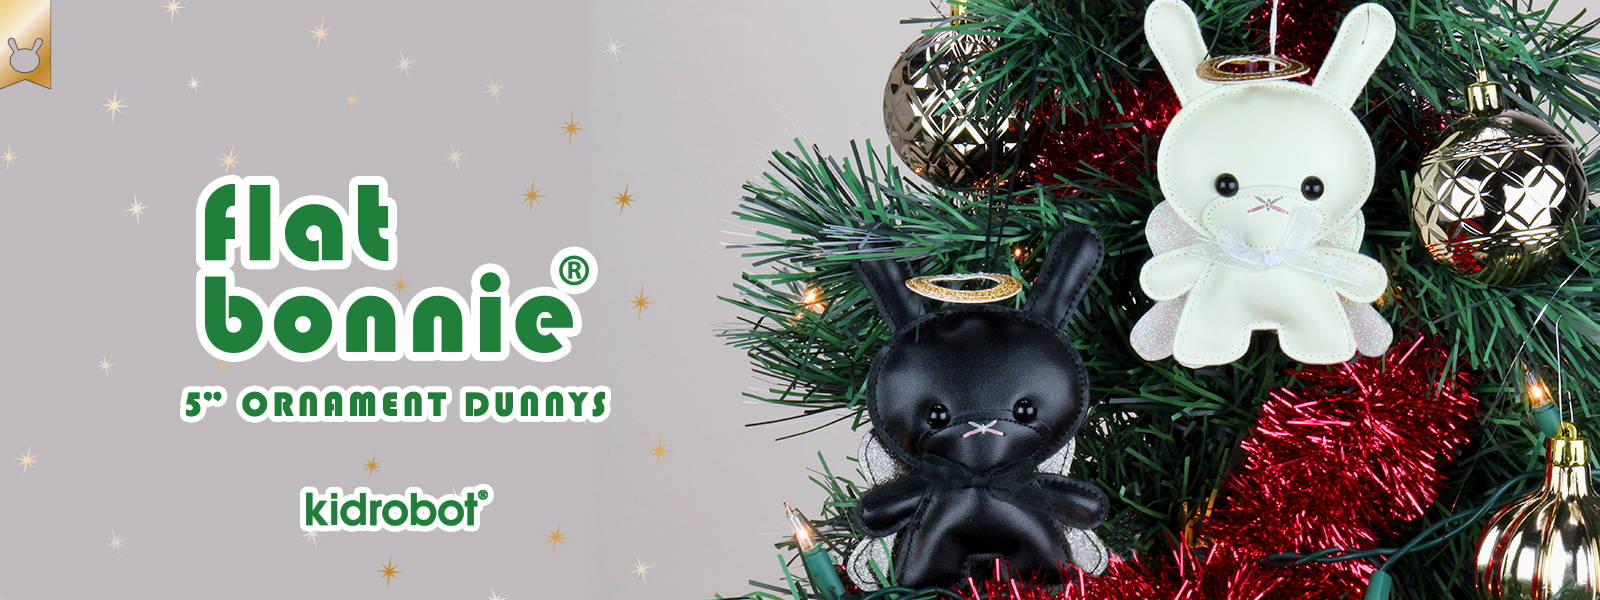 2020 Holiday Dunnys - Flat Bonnie Plush Ornament Dunny